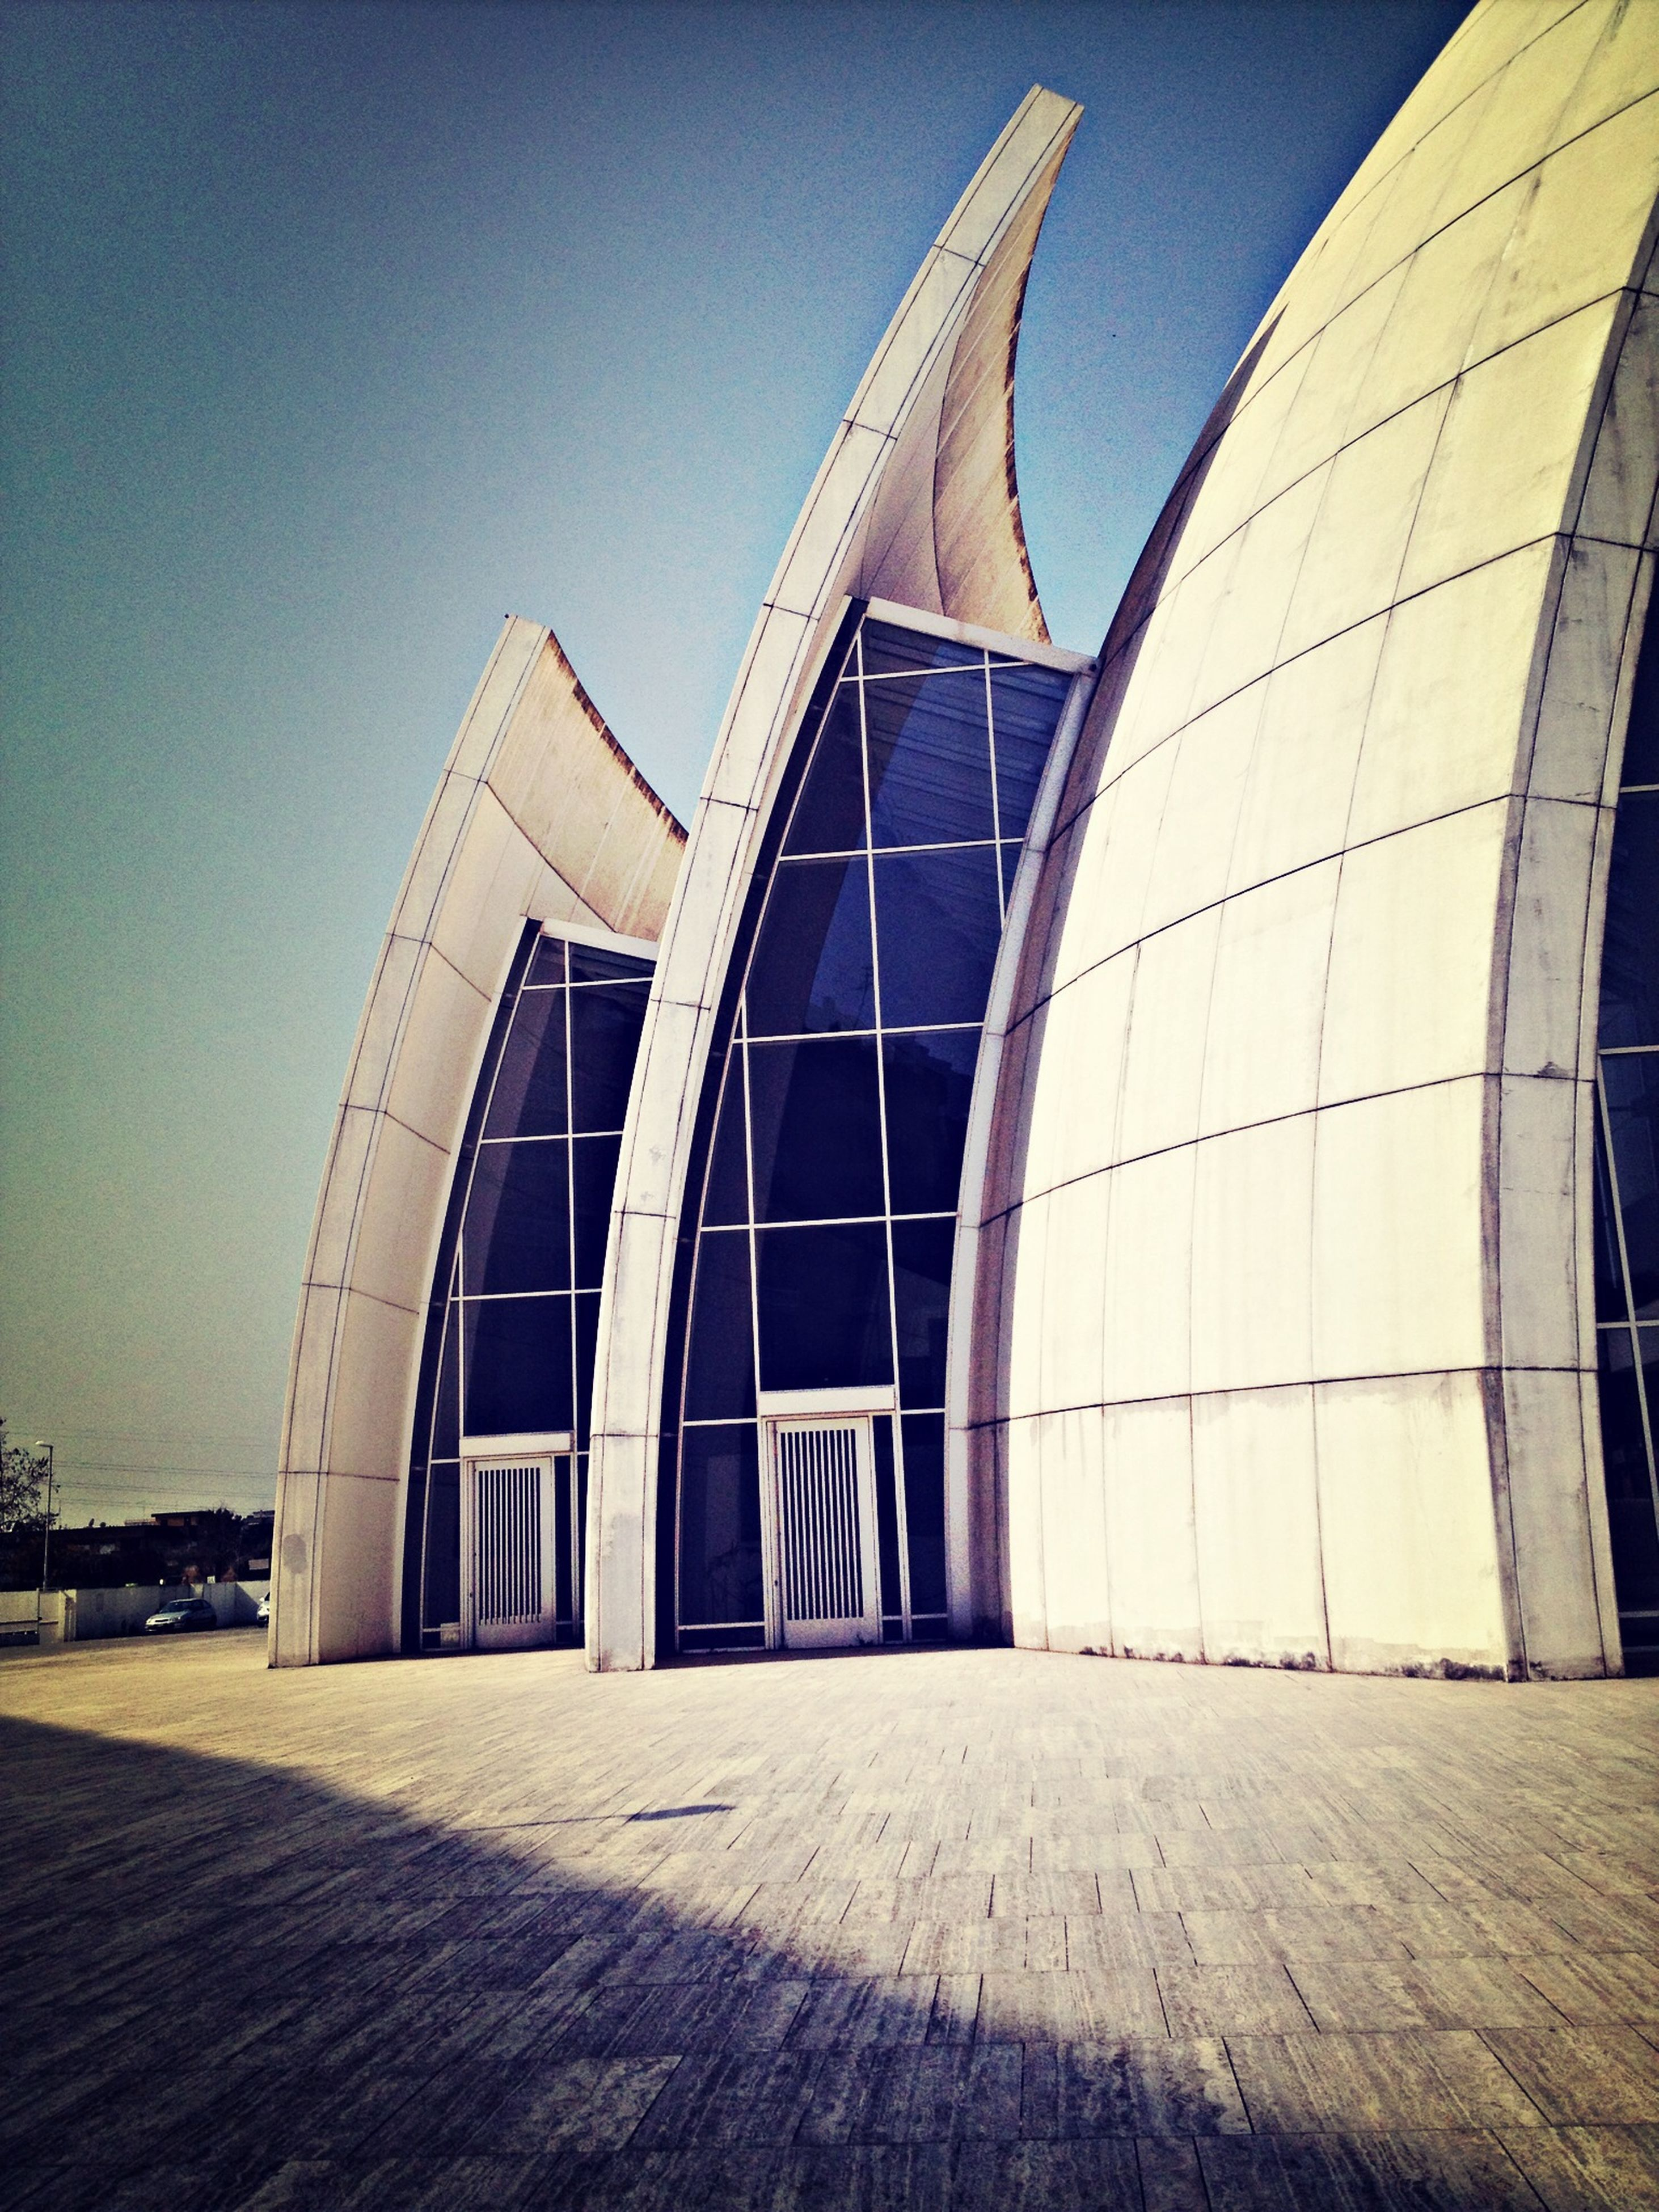 architecture, built structure, building exterior, clear sky, low angle view, modern, city, building, architectural feature, reflection, blue, outdoors, famous place, sky, day, no people, travel destinations, office building, copy space, sunlight